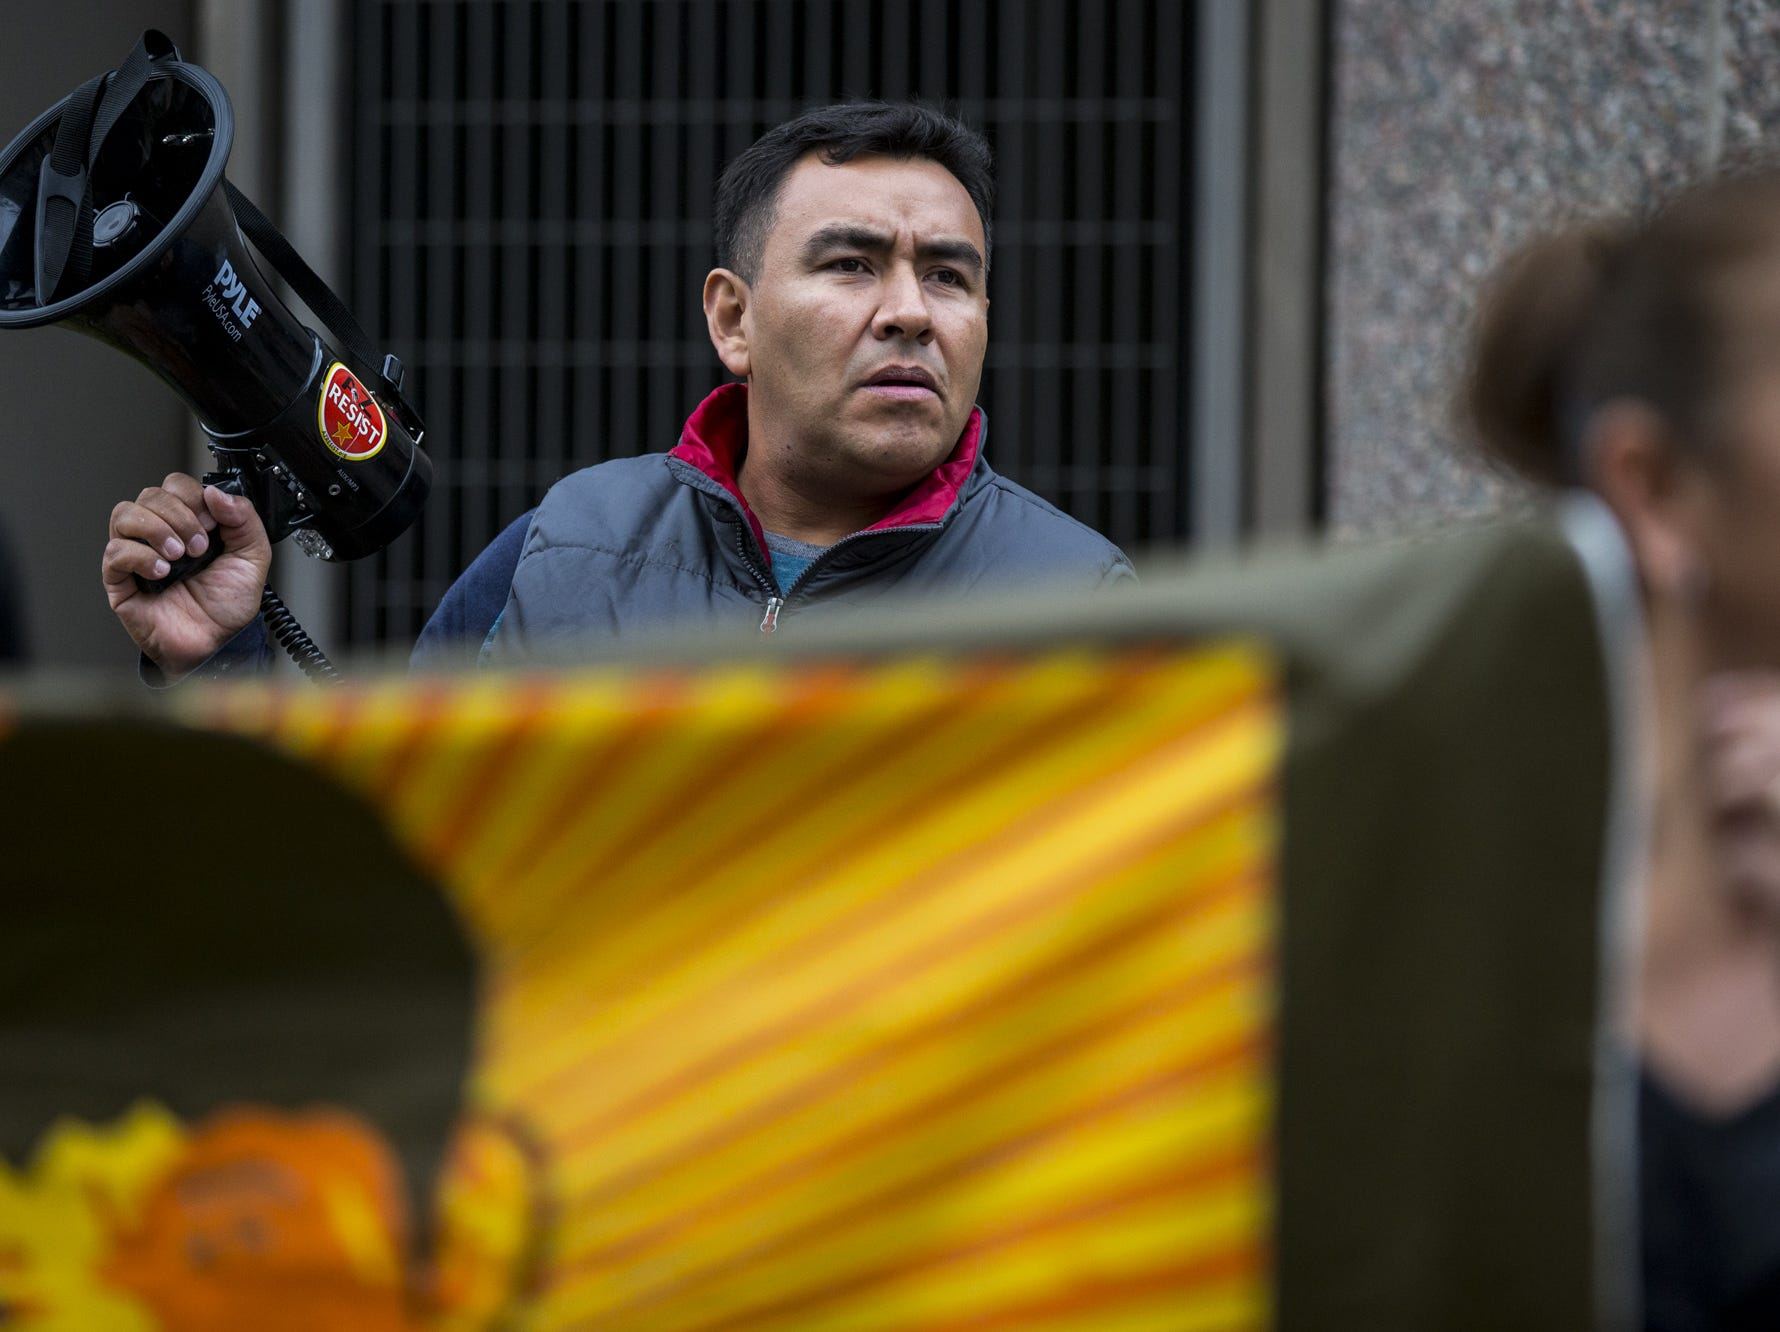 Juan Miguel Cornejo, 42, plays Spanish music through a megaphone during a rally on the one-month anniversary of the police shooting of 14-year-old Antonio Arce on Friday, Feb. 15, 2019, outside Tempe Police headquarters in Tempe, Ariz.